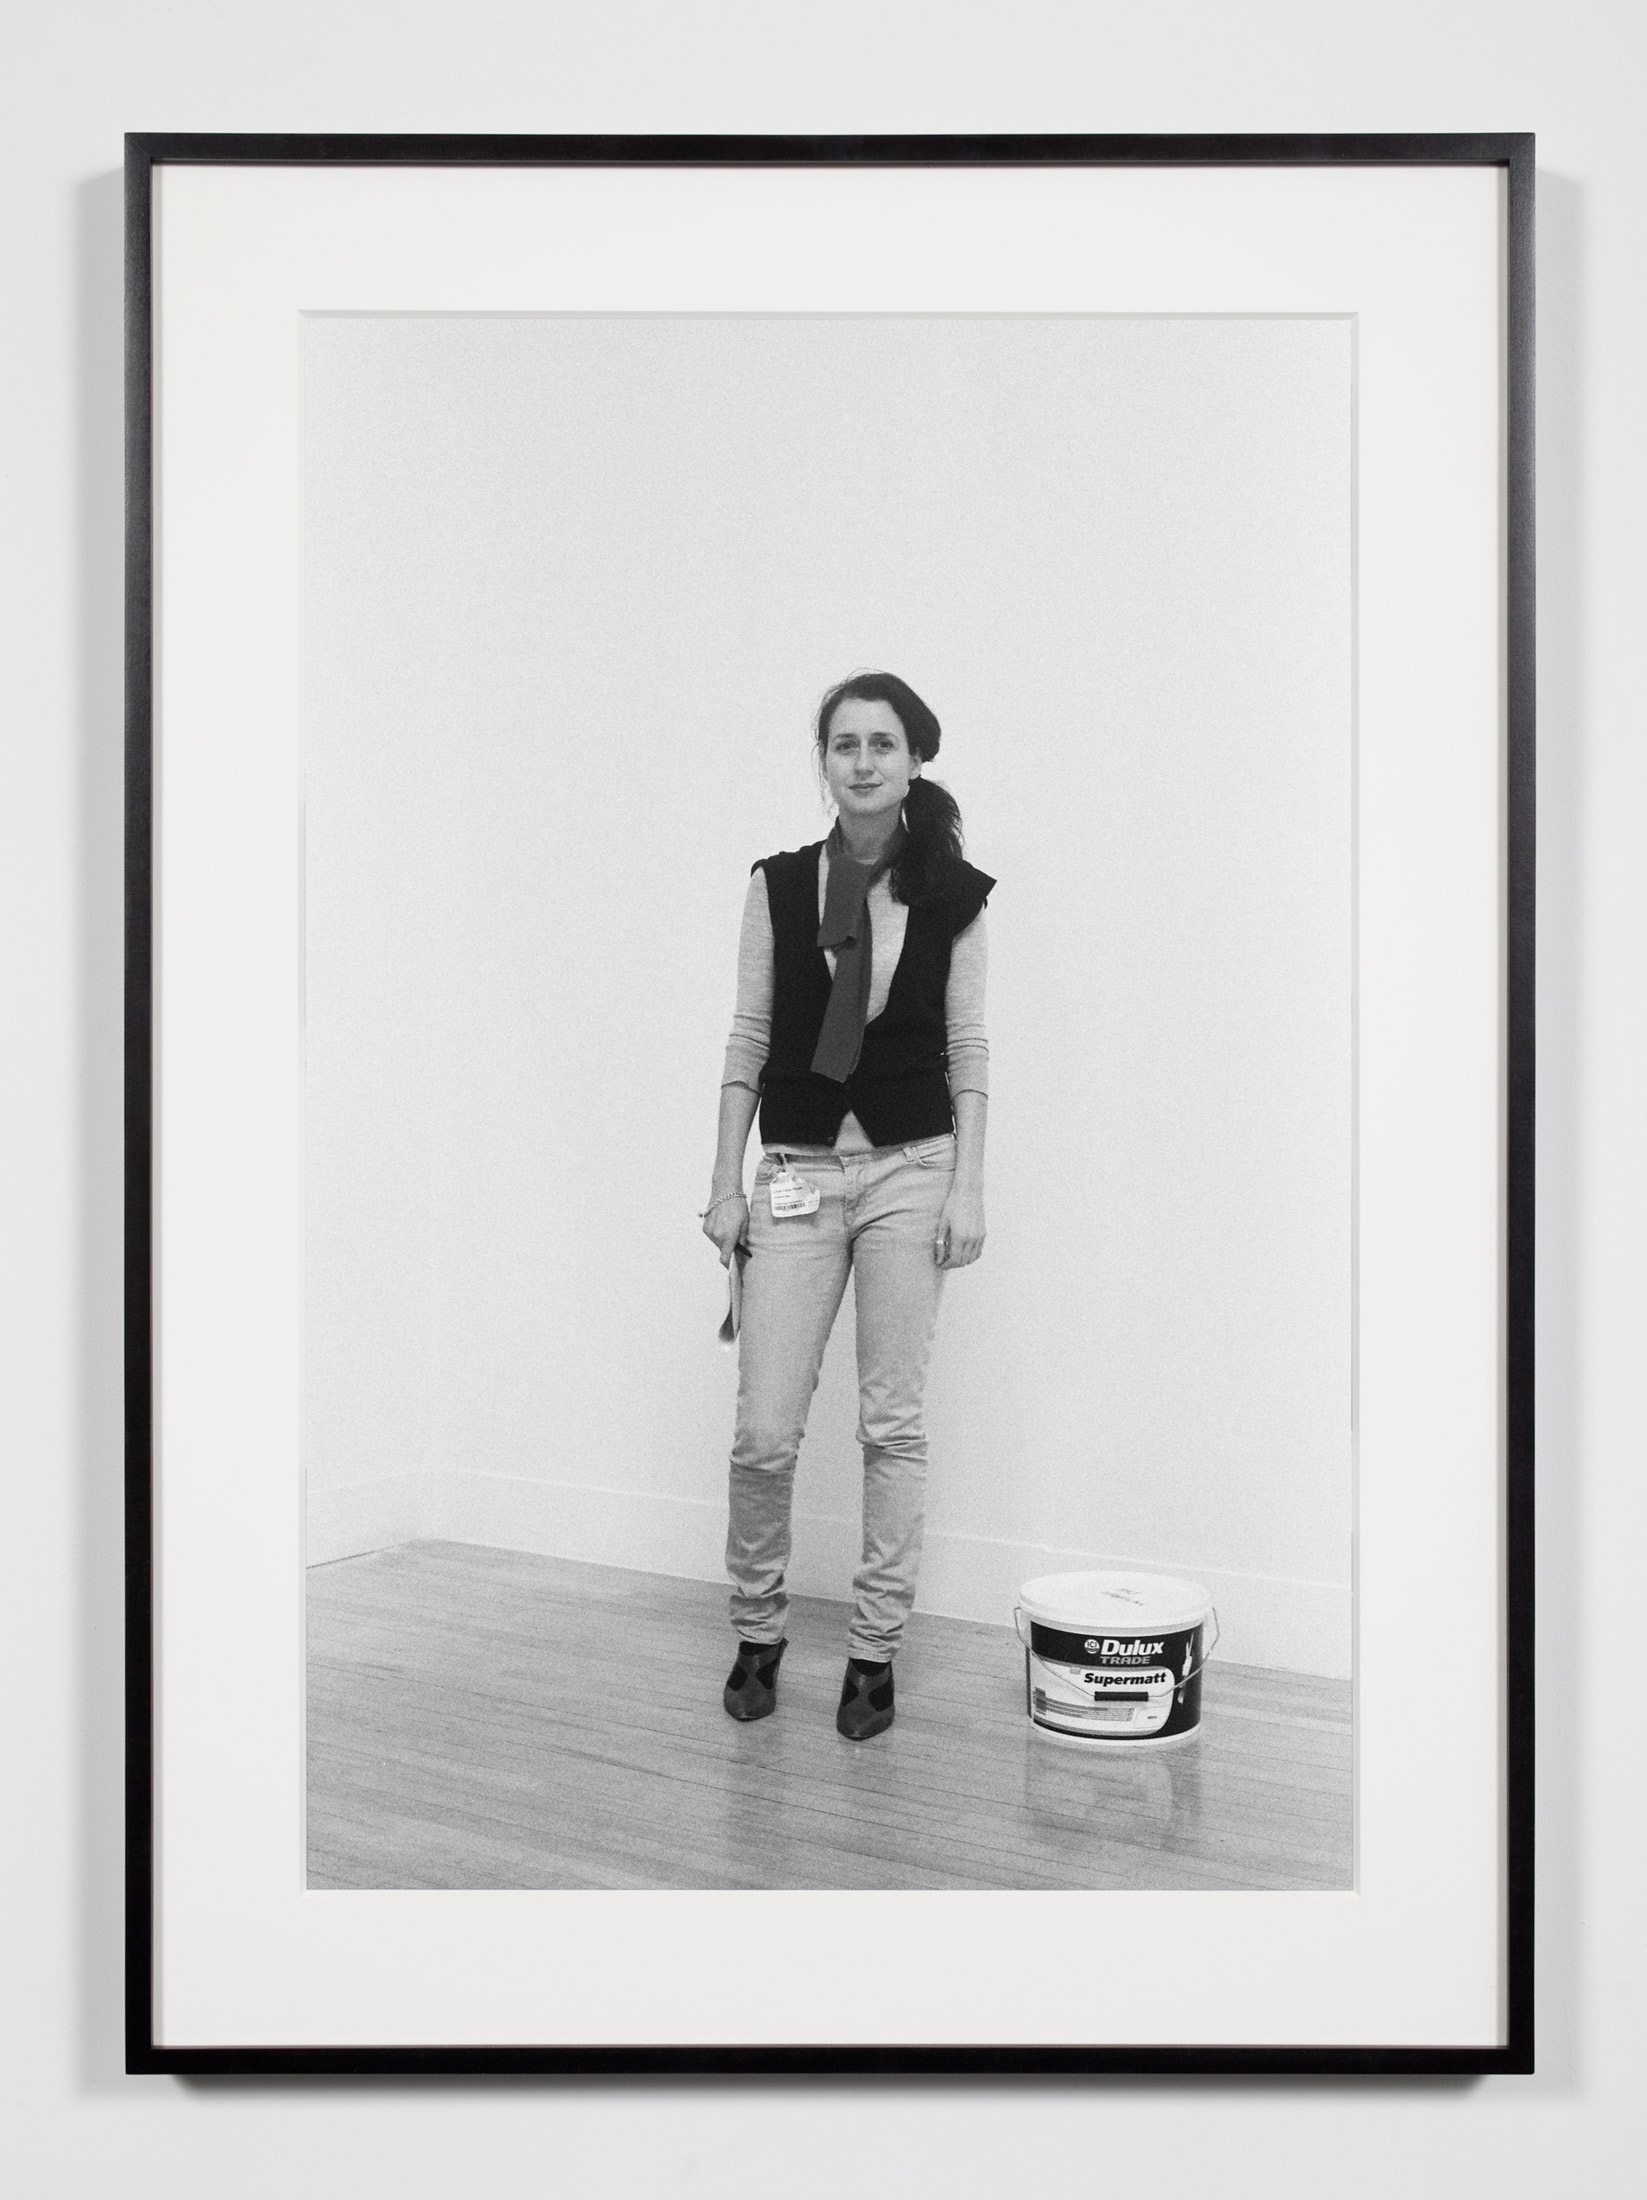 Museum Curator, London, United Kingdom, January 30, 2009    2011   Epson Ultrachrome K3 archival ink jet print on Hahnemühle Photo Rag paper  36 3/8 x 26 3/8 inches   Industrial Portraits, 2008–